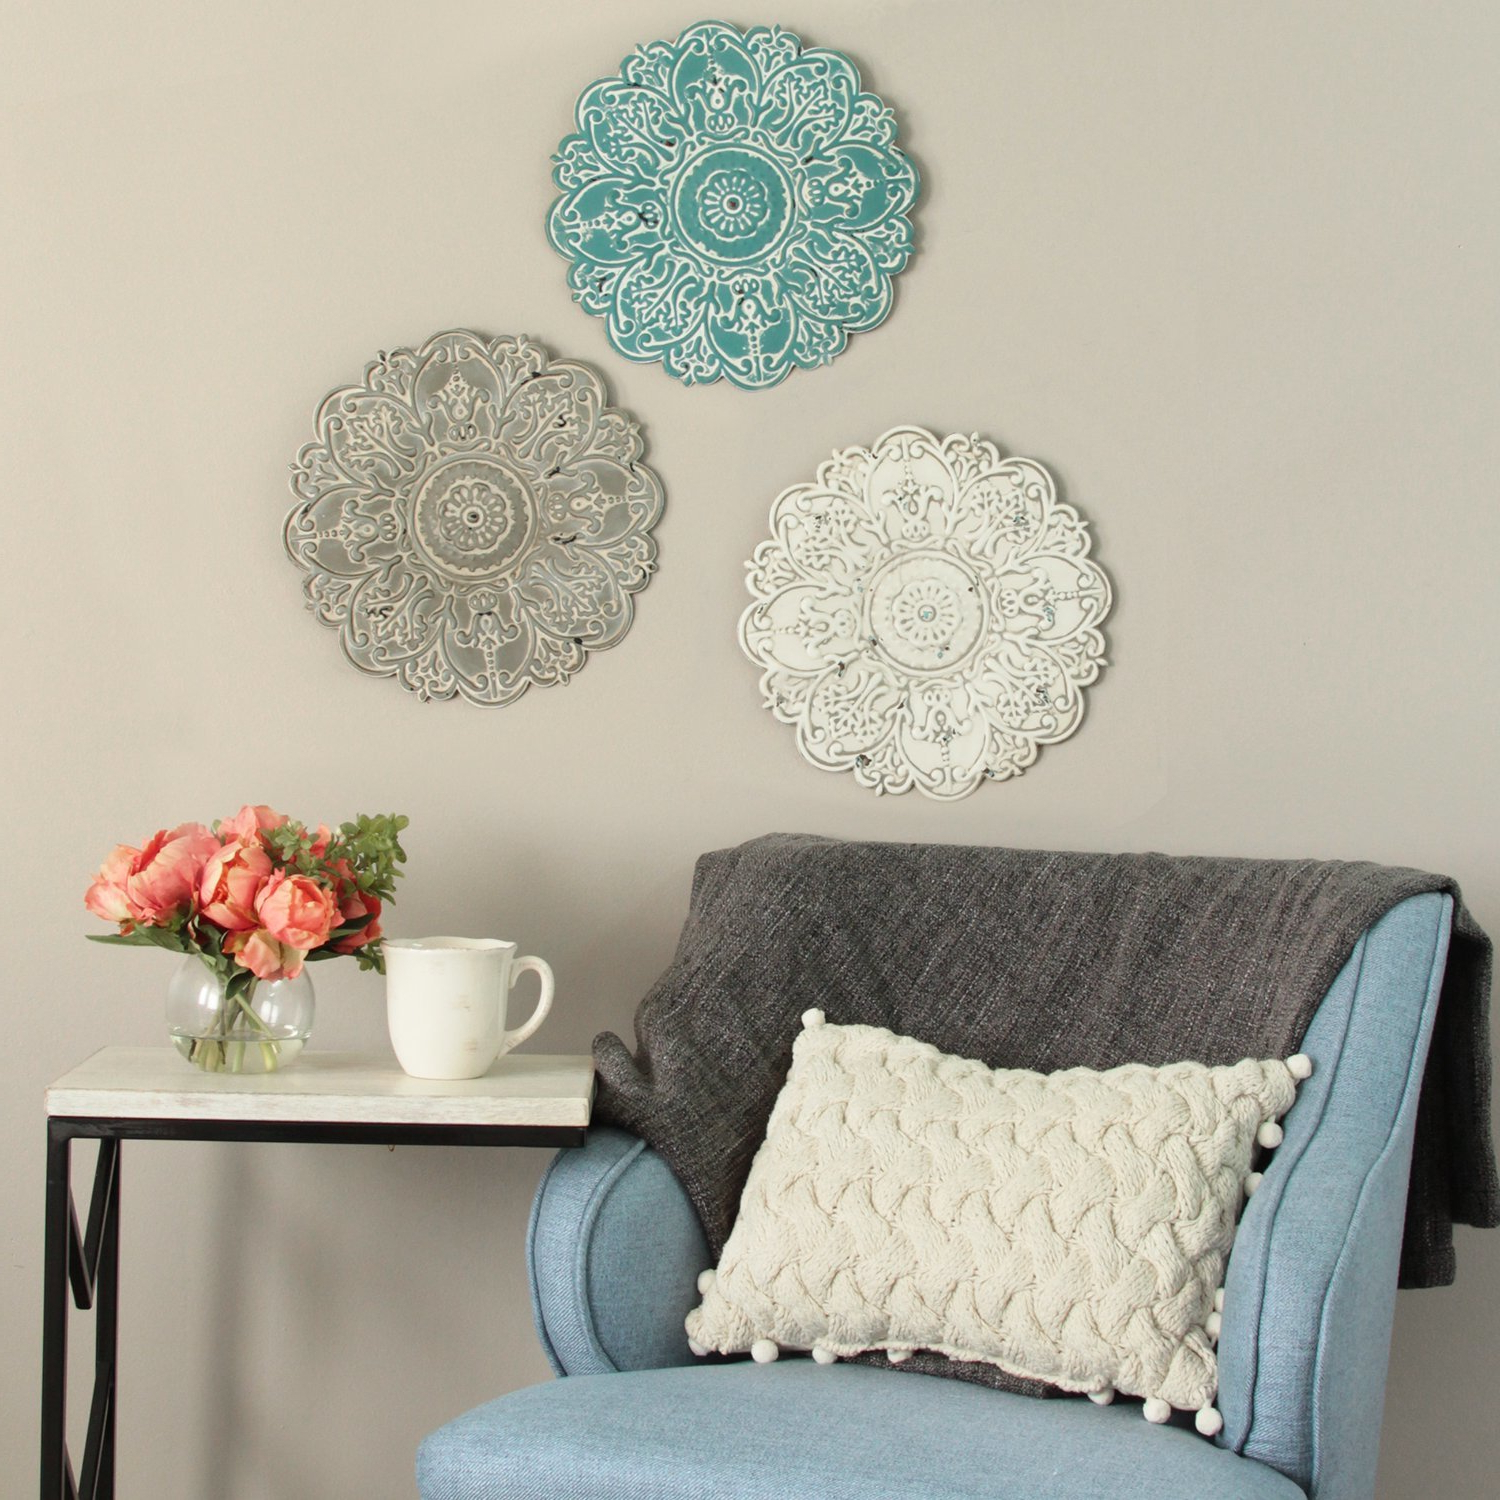 2019 Small Medallion Wall Decor With Bungalow Rose Small Medallion Wall Décor & Reviews (View 1 of 20)